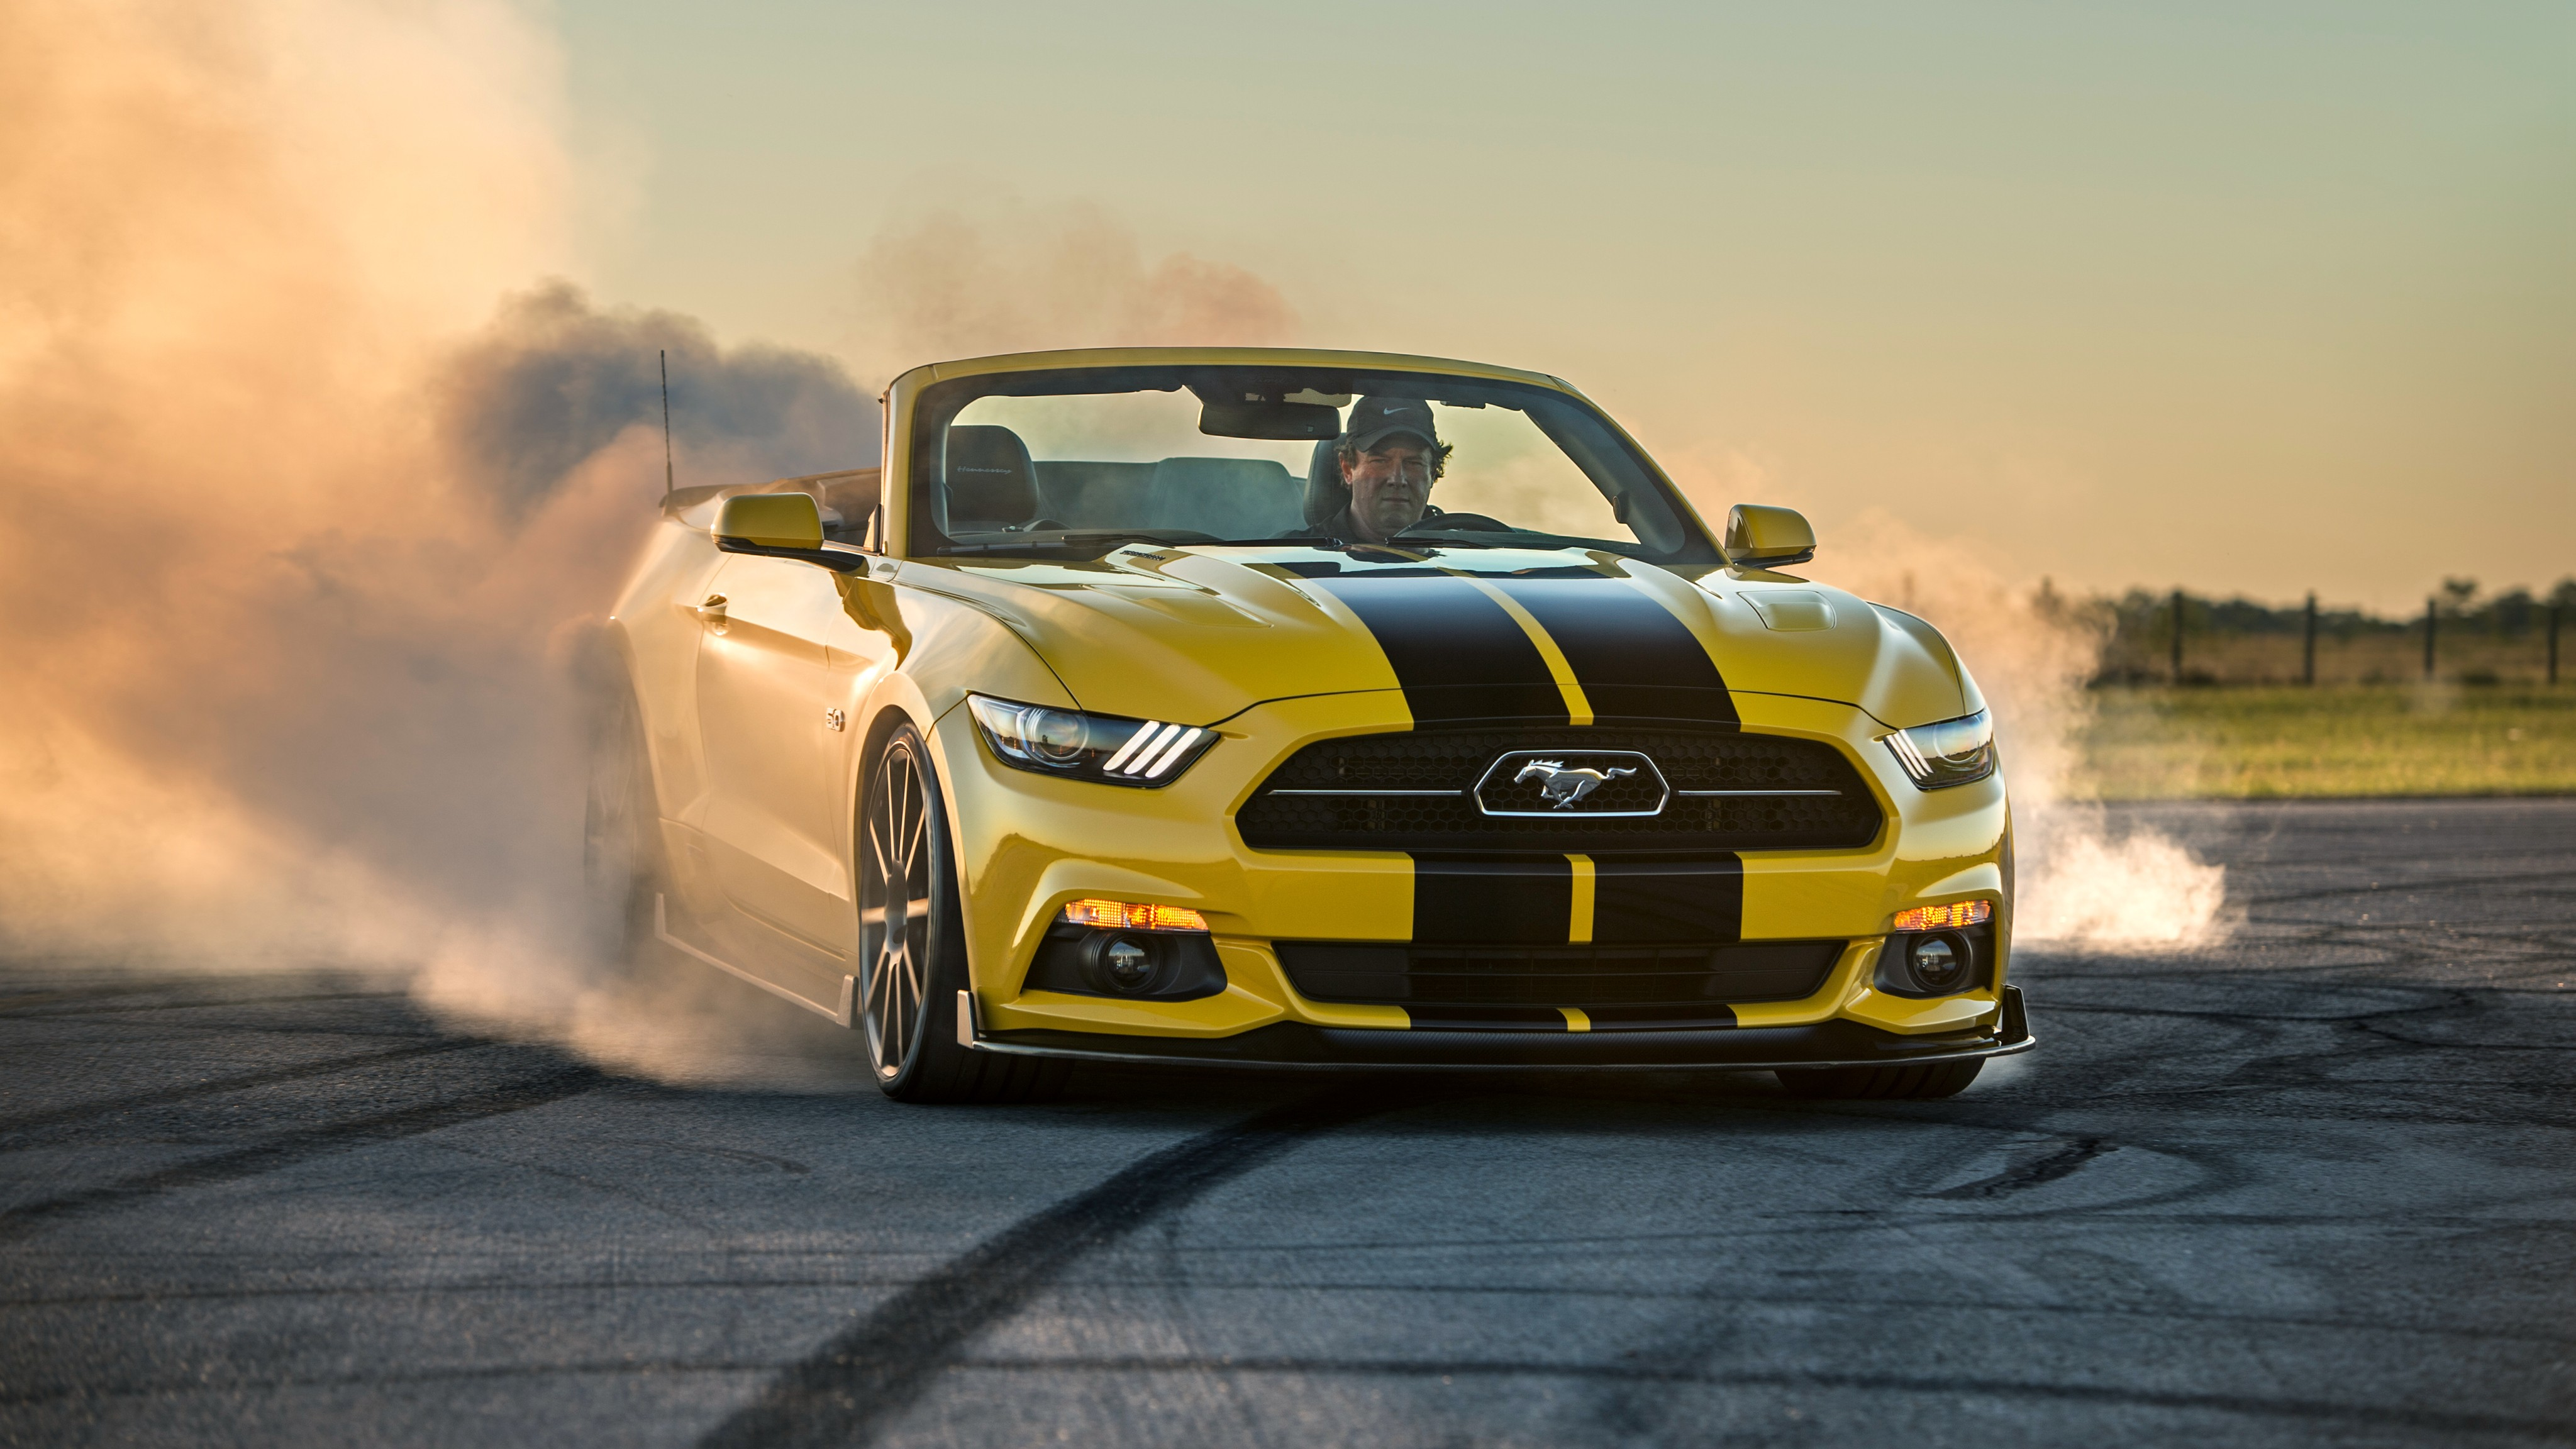 Ford Mustang Hennessey >> Wallpaper Hennessey Mustang GT Convertible, HPE750 Supercharged, yellow, sport car, racing, SEMA ...